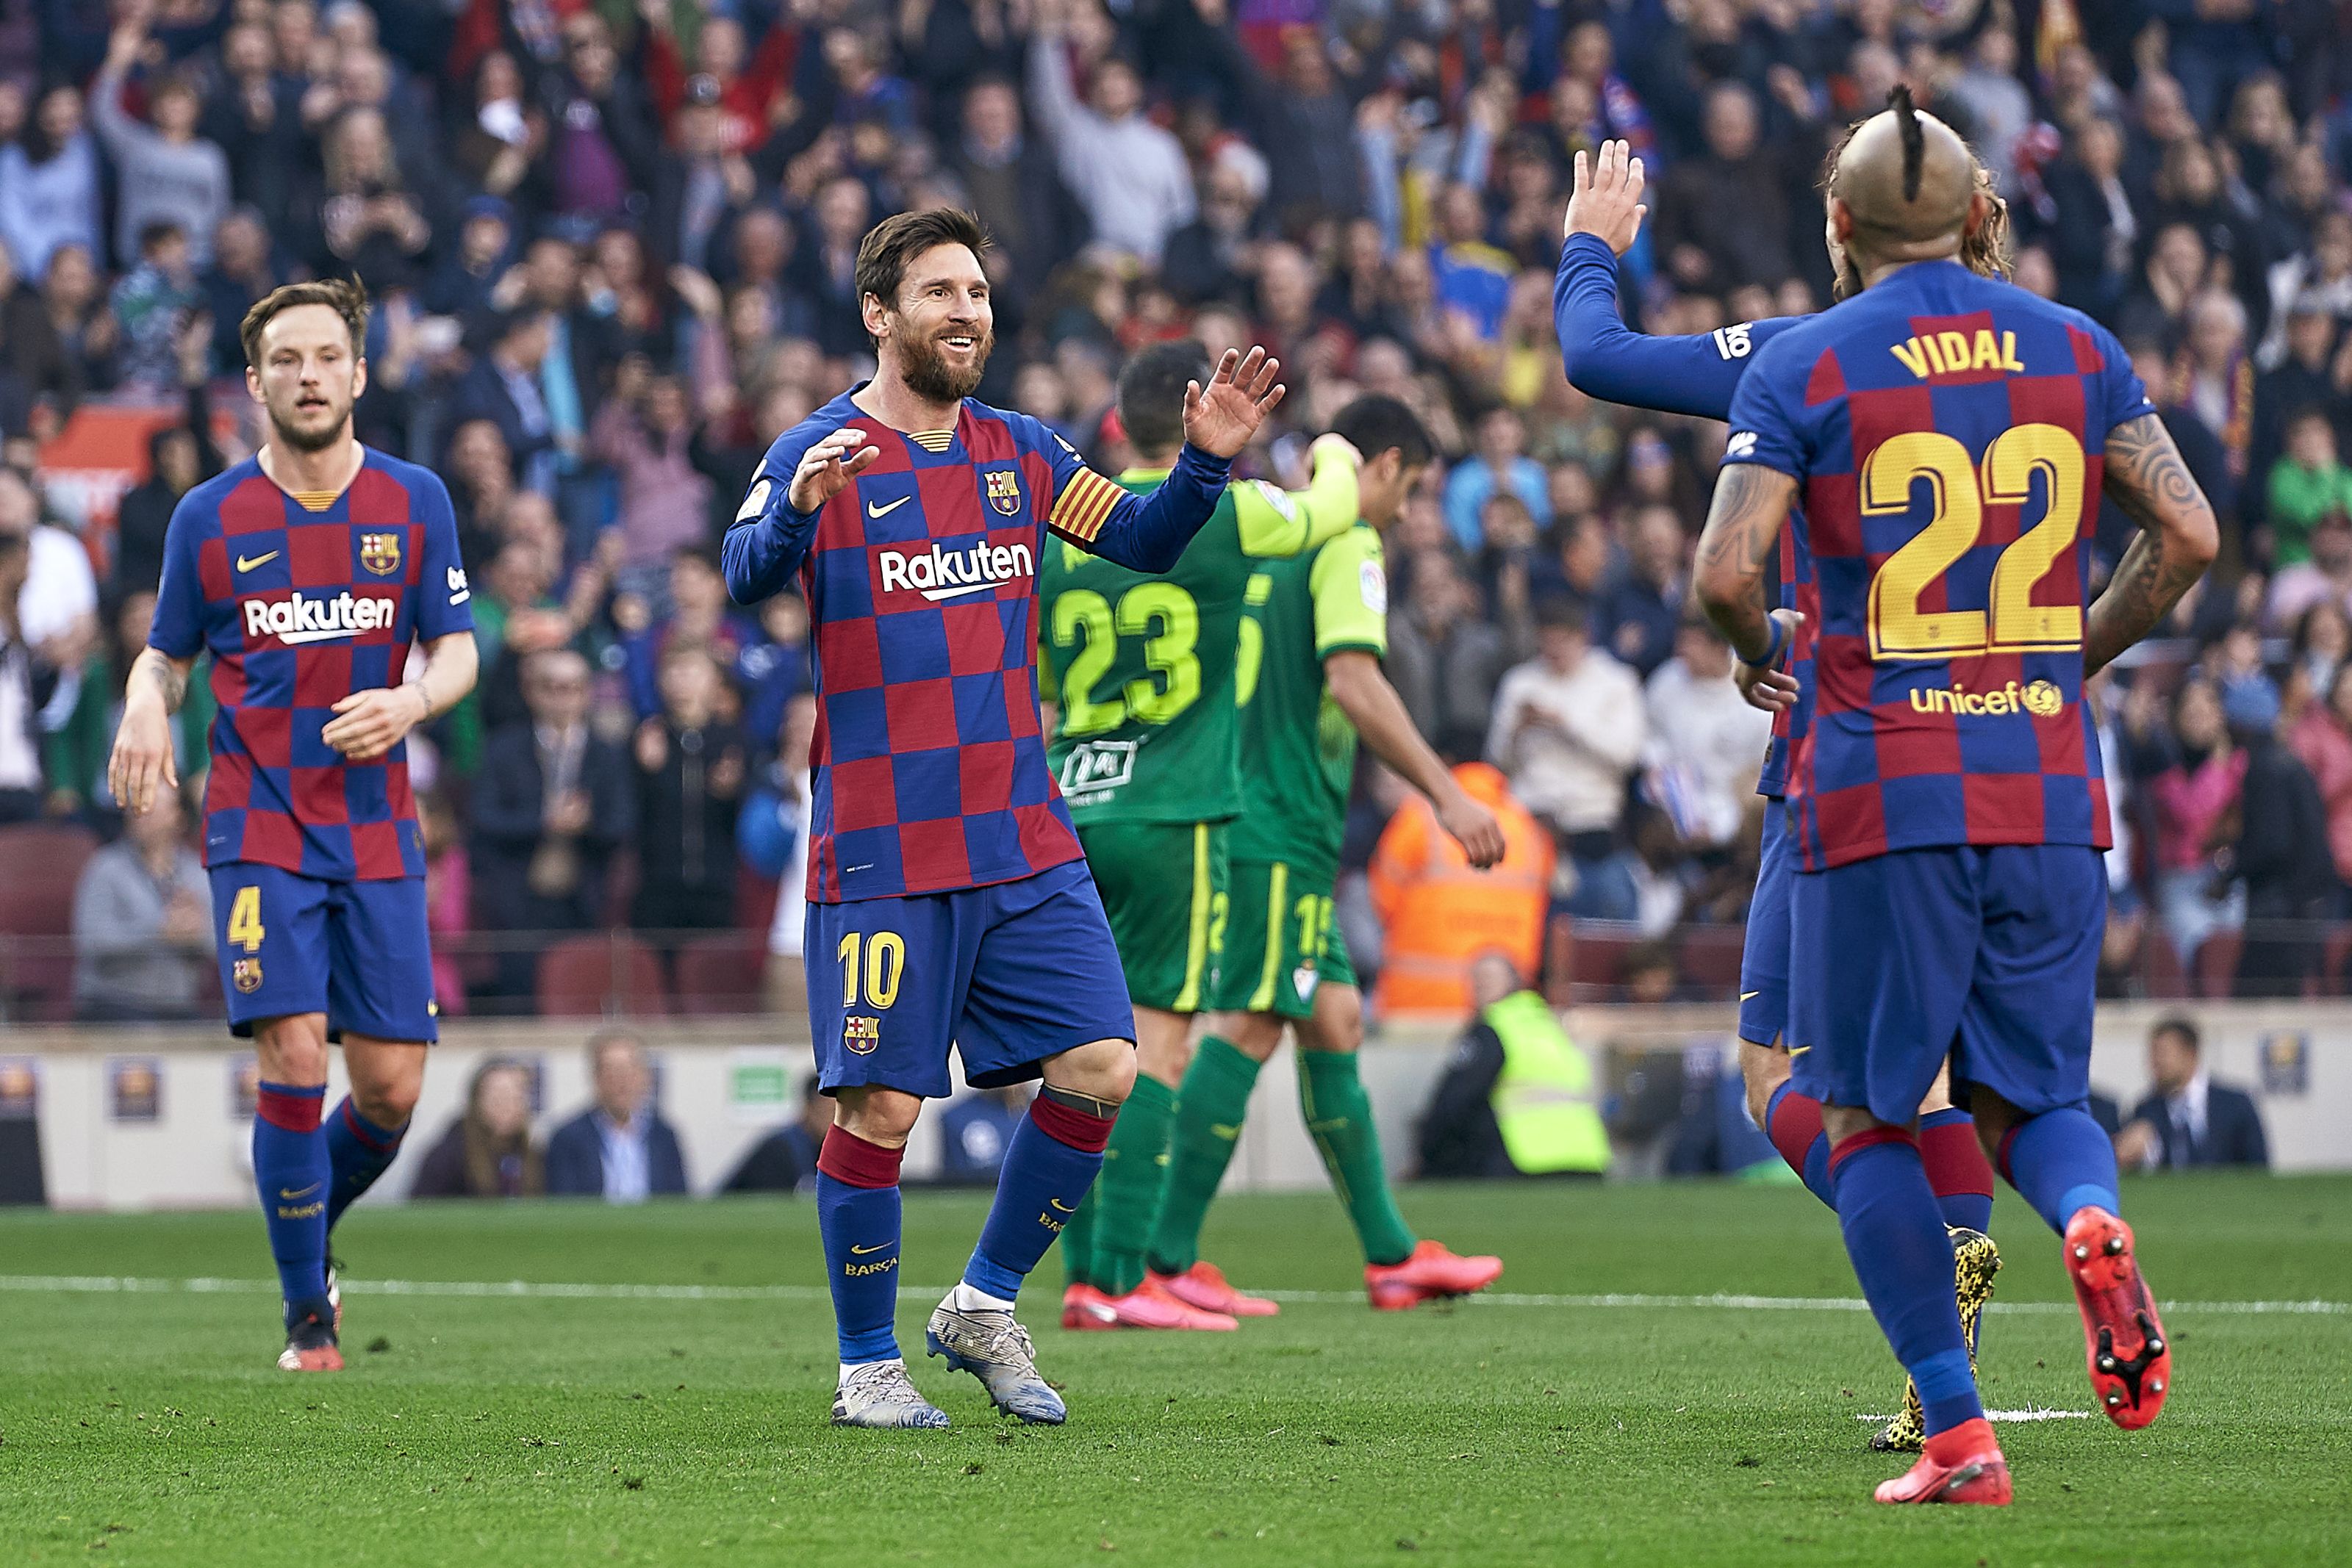 Barcelona face an absurd medical test before the clash against Napoli